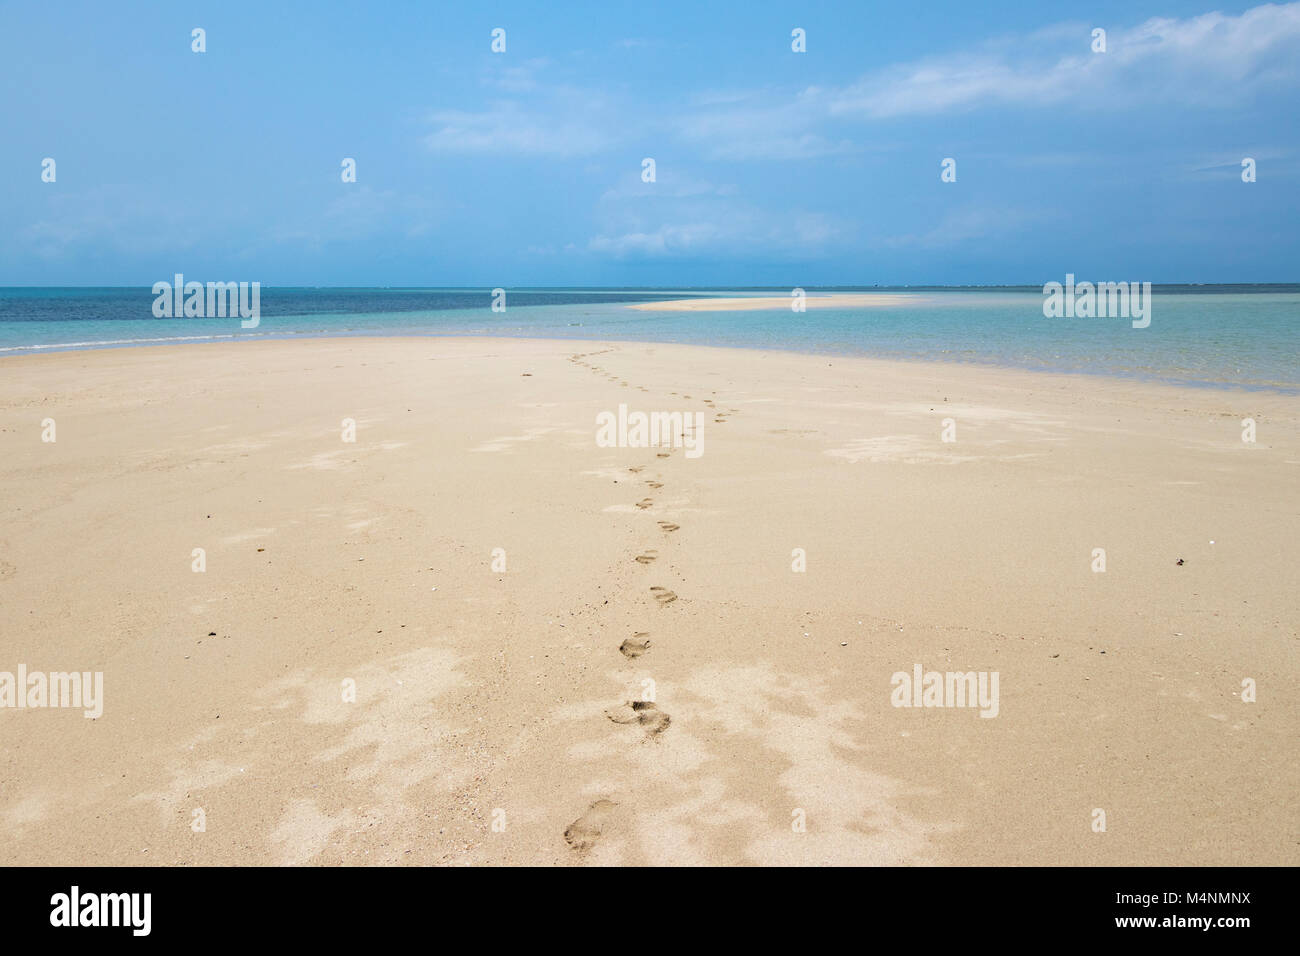 Desert island in Mozambique with turquoise sea - Stock Image